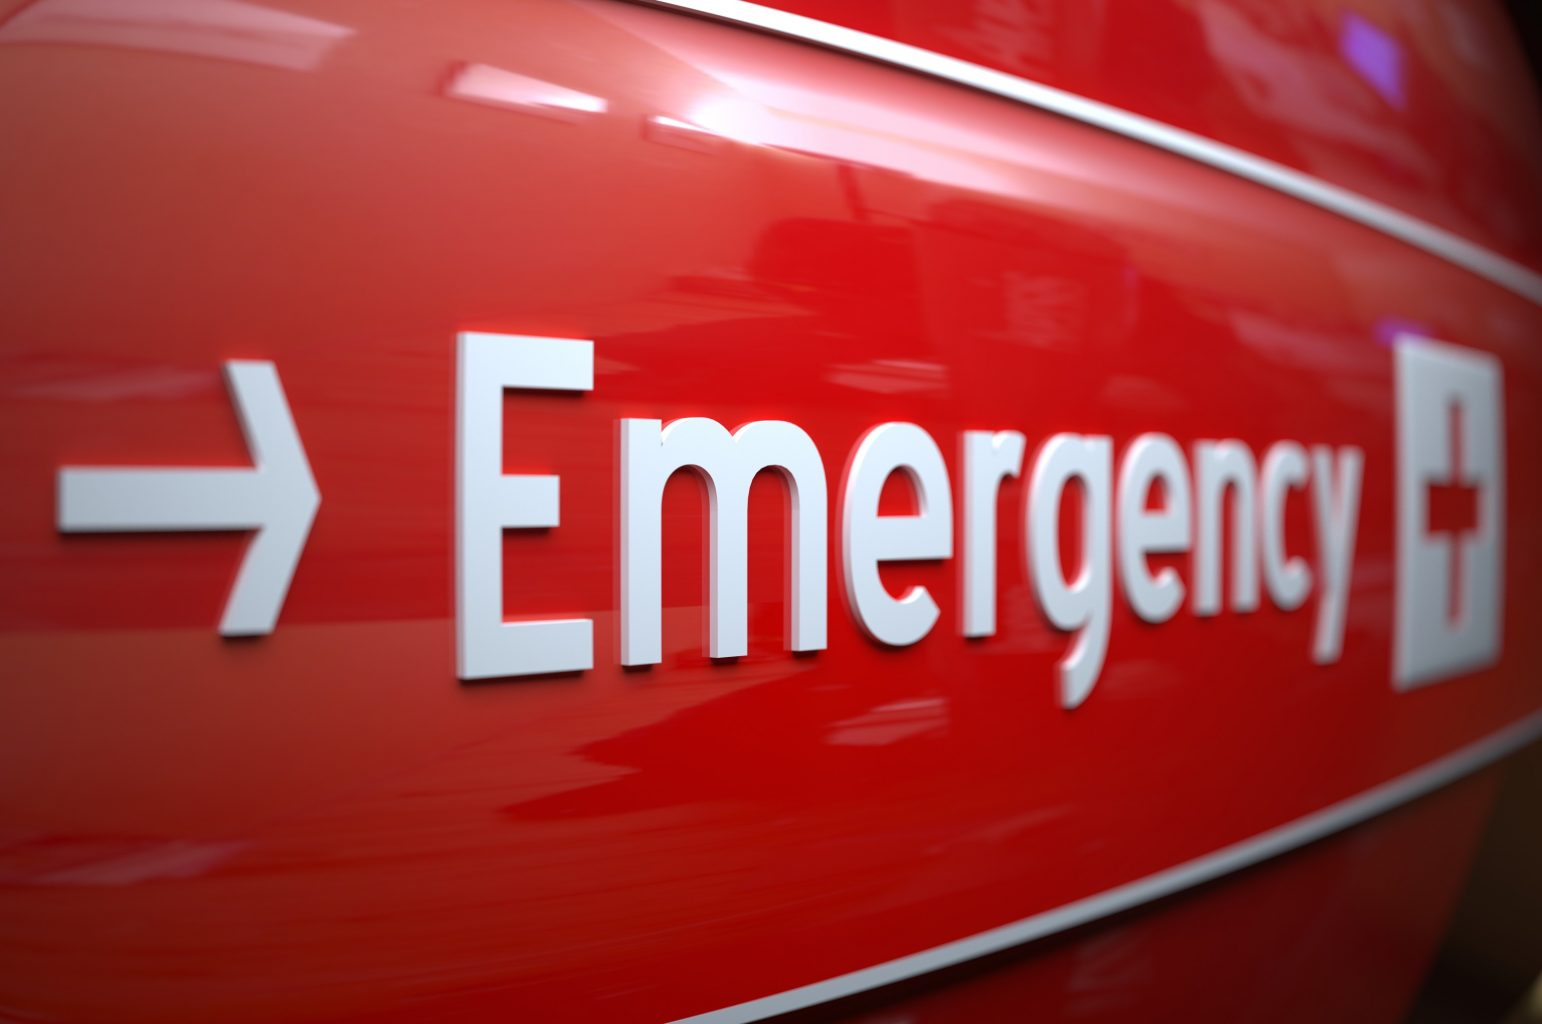 Do You Know What to Do in Medical Emergencies?